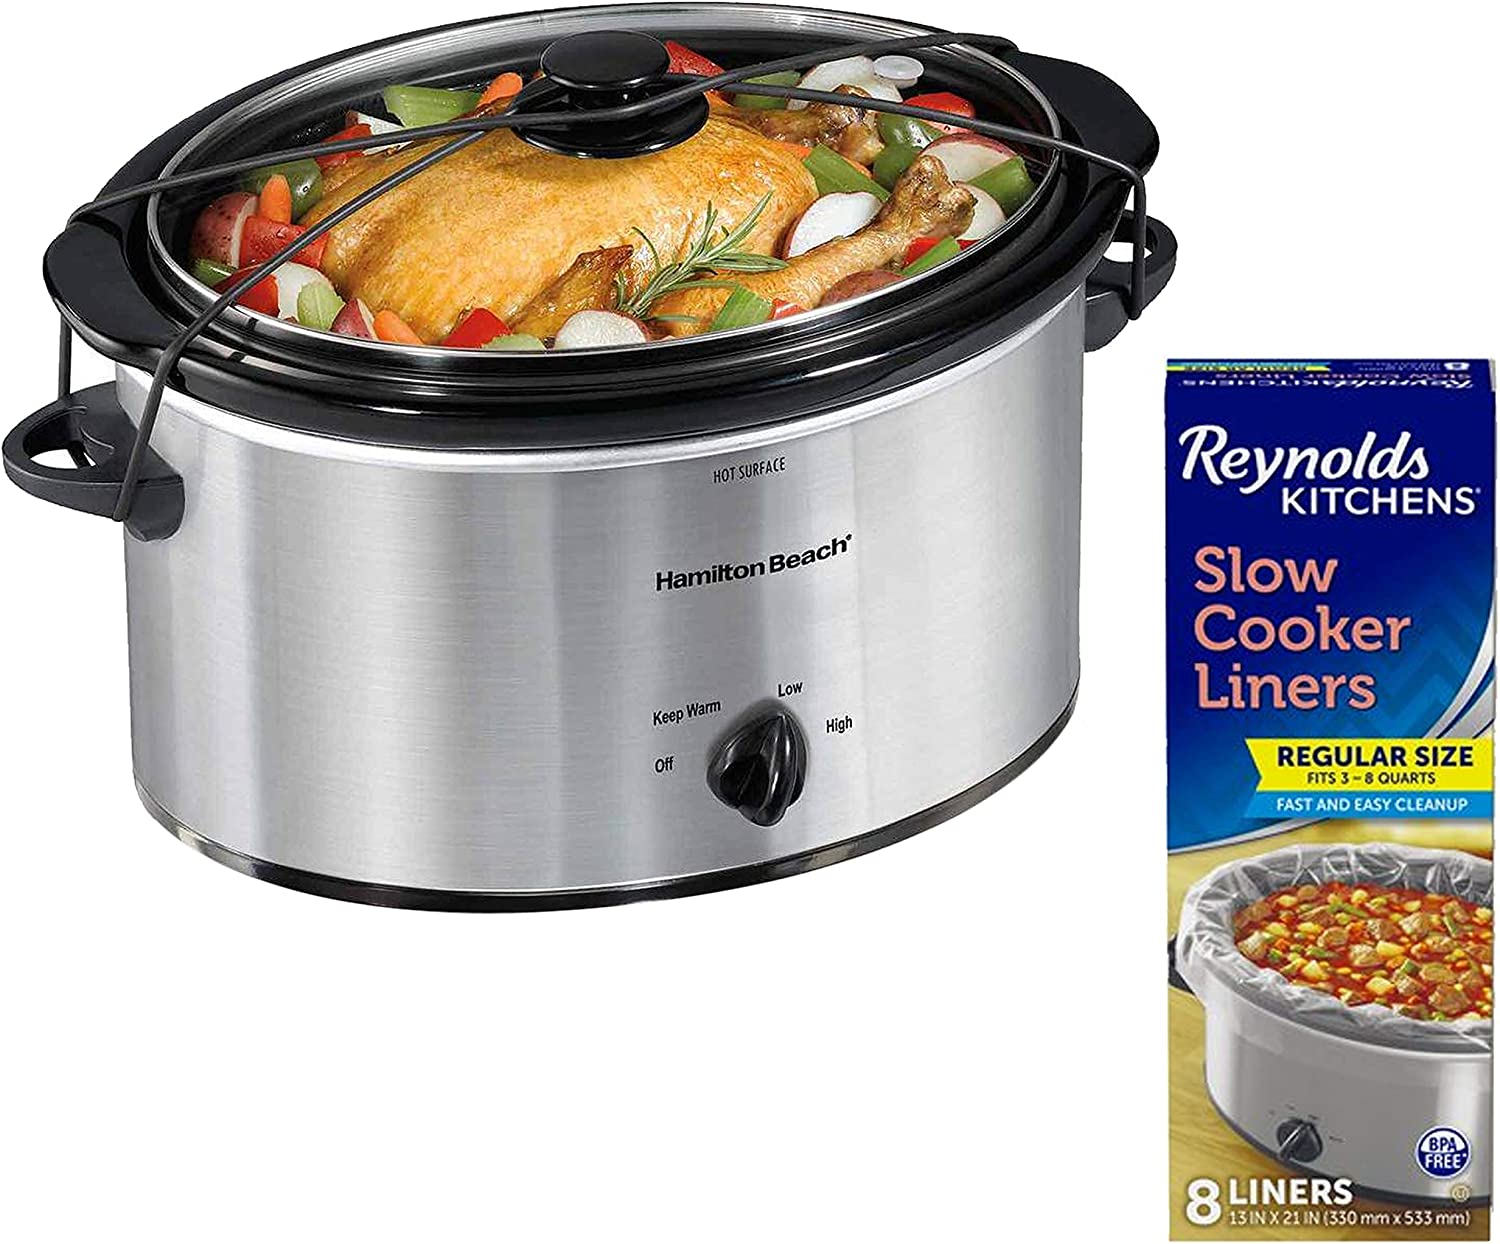 Hamilton Beach Portable 5 Quart Slow Cooker with Lid Latch Strap, Silver bundle with Reynolds Kitchens Slow Cooker Liners, 13 Inches by 21 Inches, 8 Count